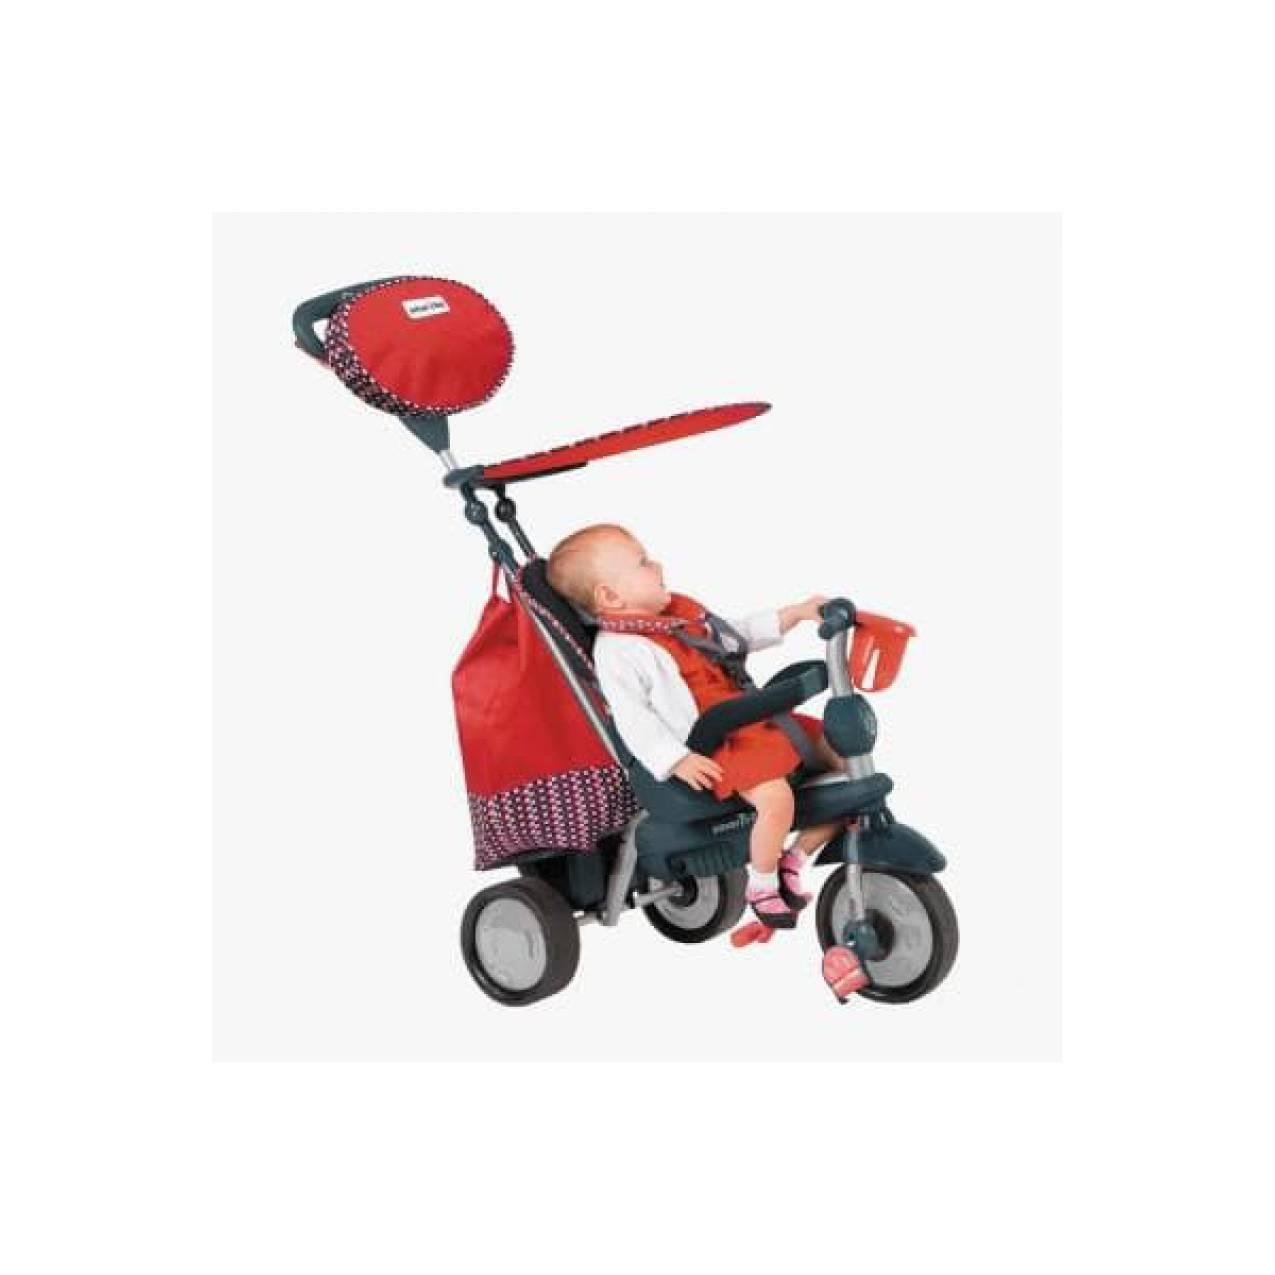 SMART TRIKE SPLASH RECLINER 5IN1 RED Murah